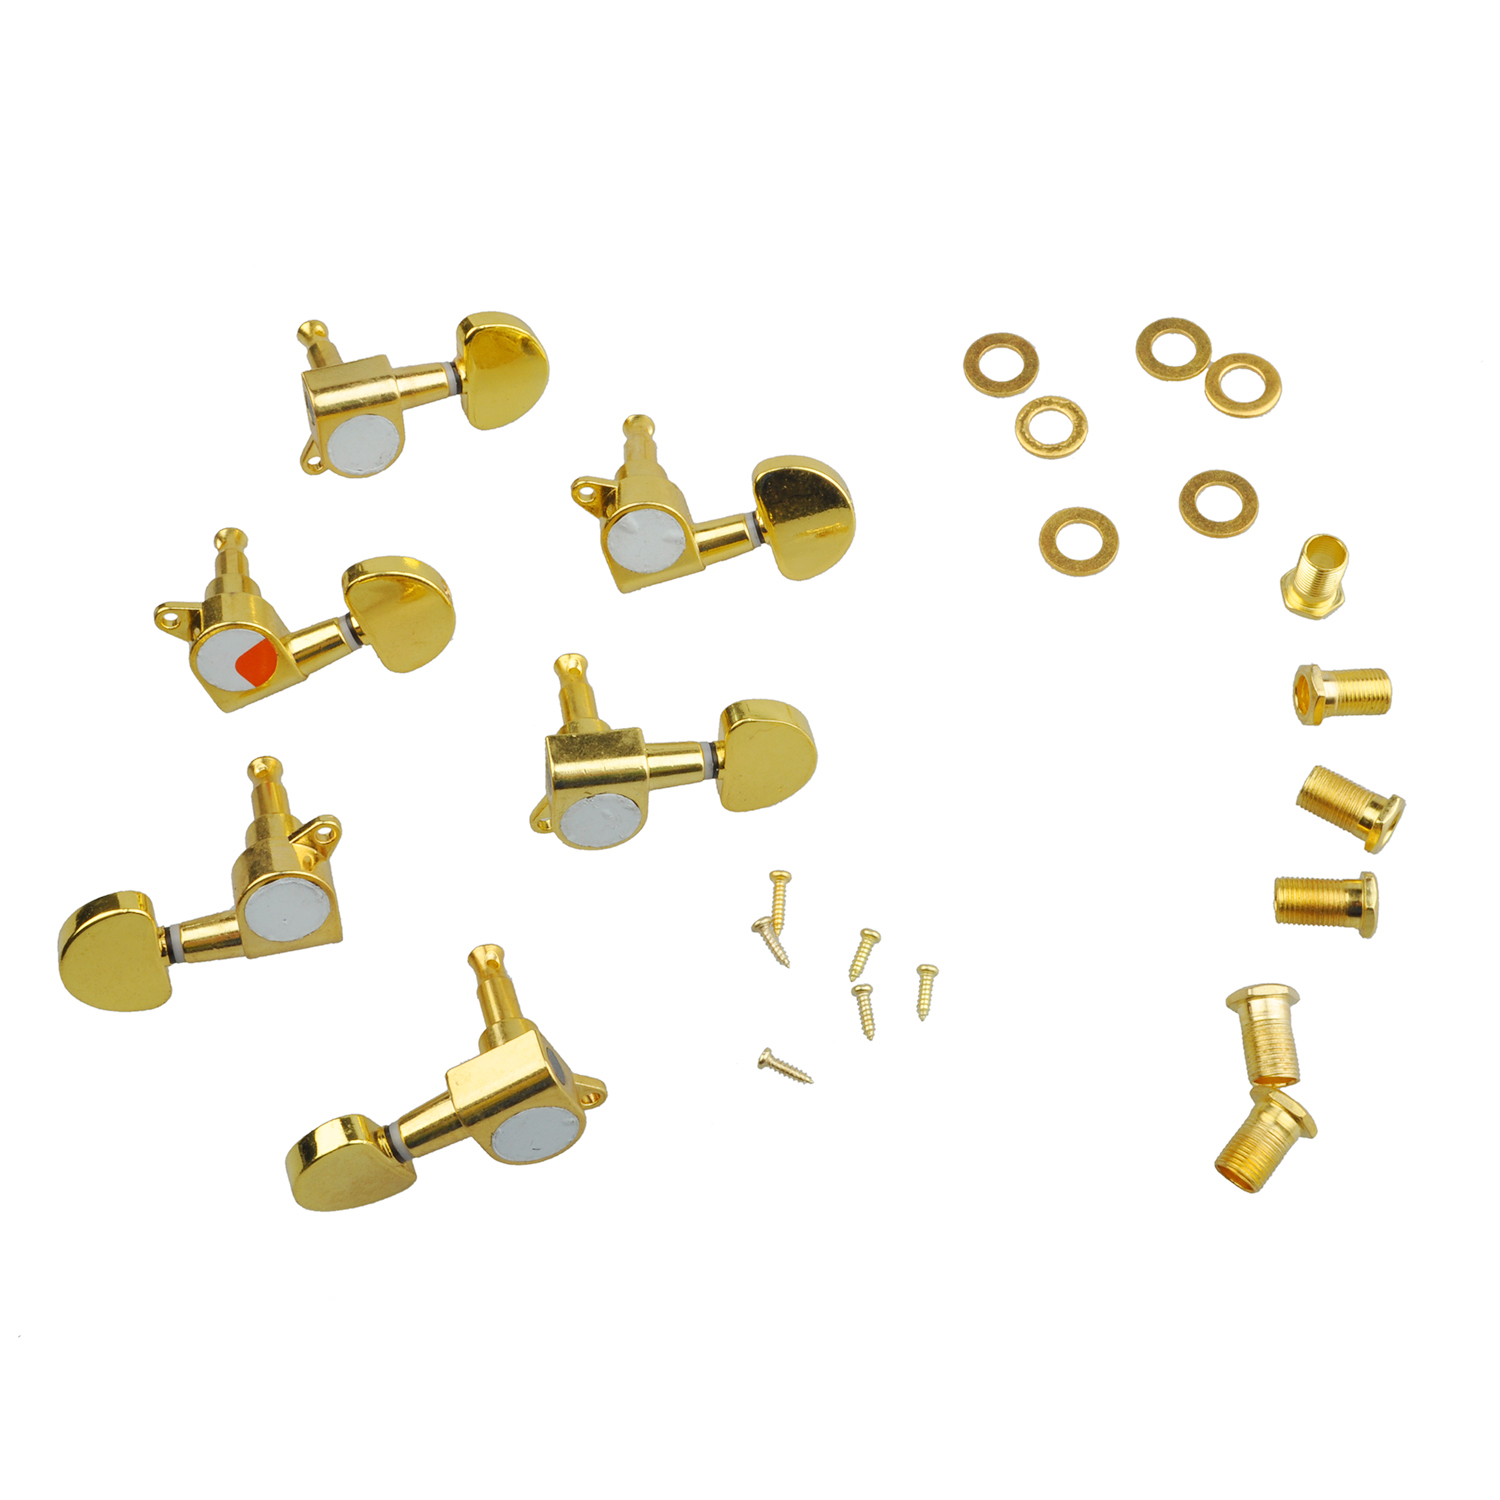 HOT 5X 3 Pairs Sealed Guitar String Tuning Pegs Tuners Machine Heads Gold / Steel and Zinc Alloy Gold Guitar Heads with Screws